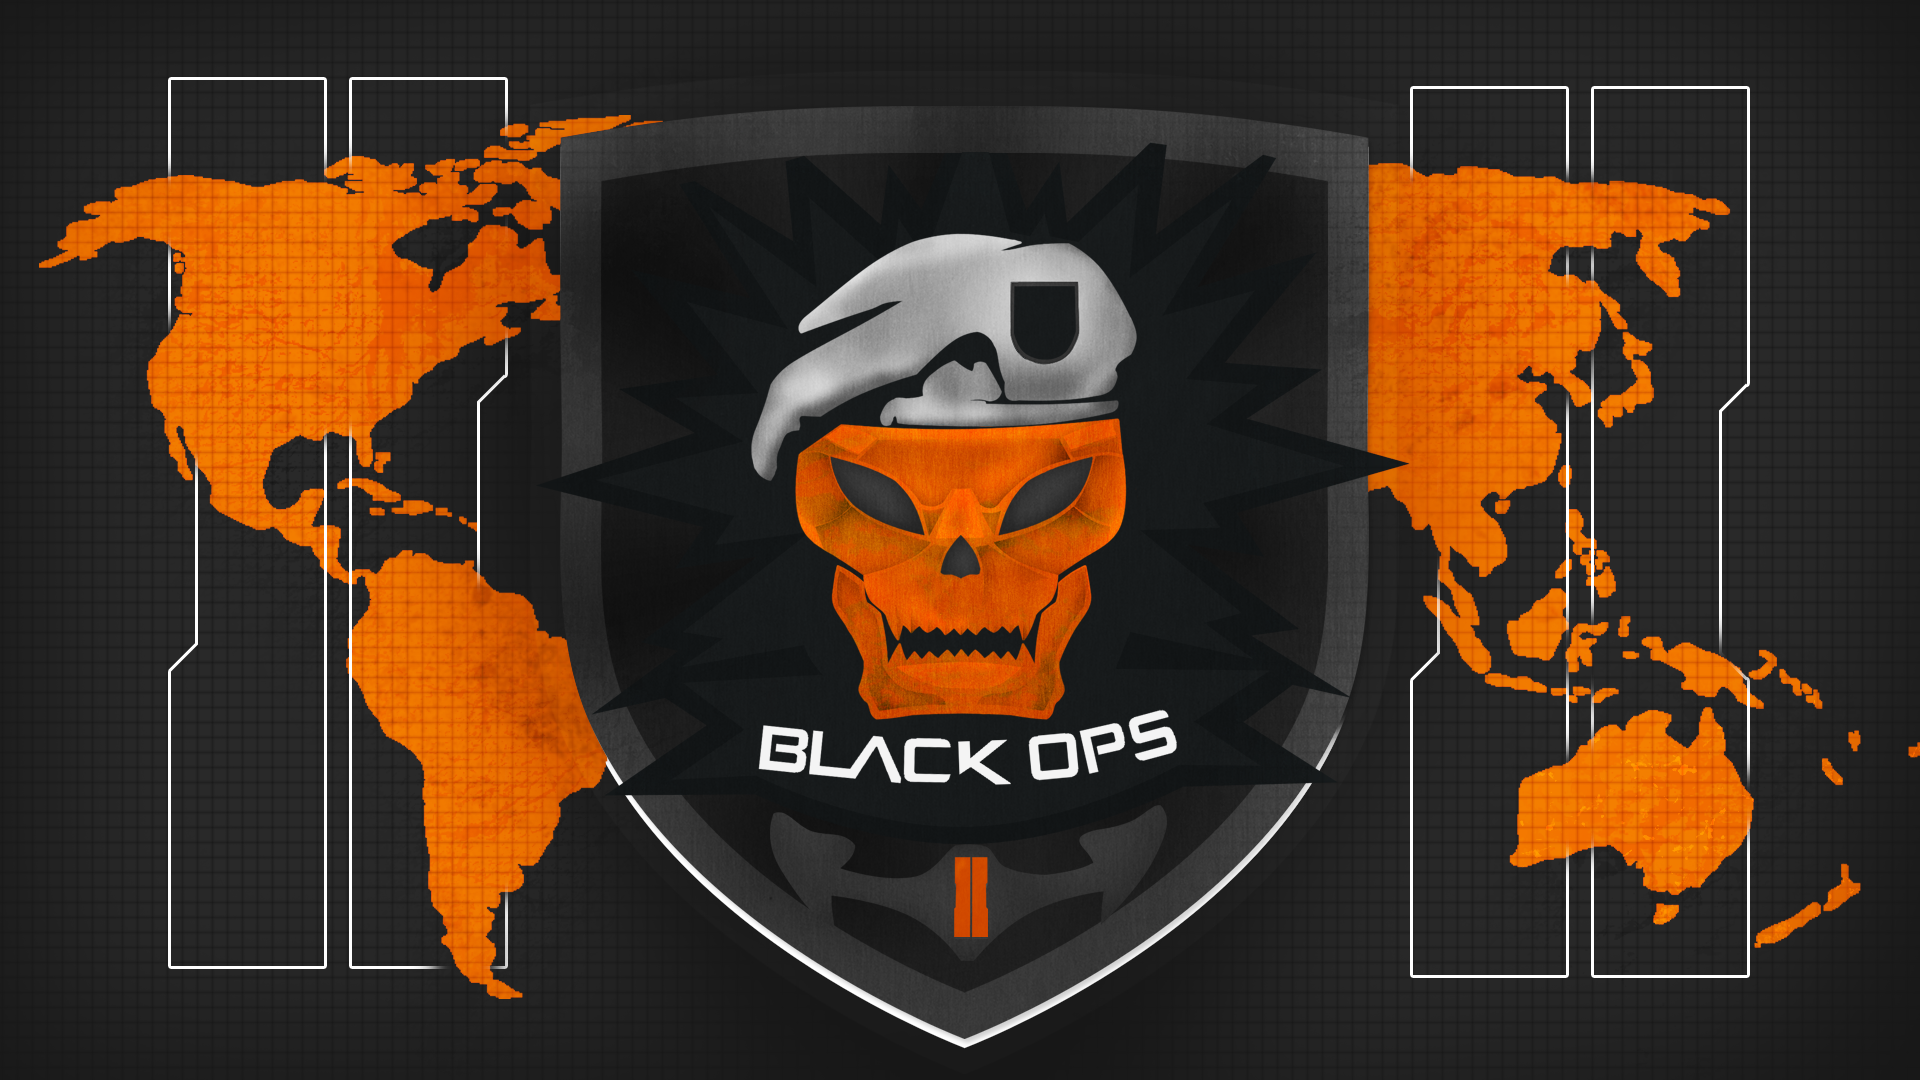 Black Ops 2 Wallpaper - WallpaperSafari